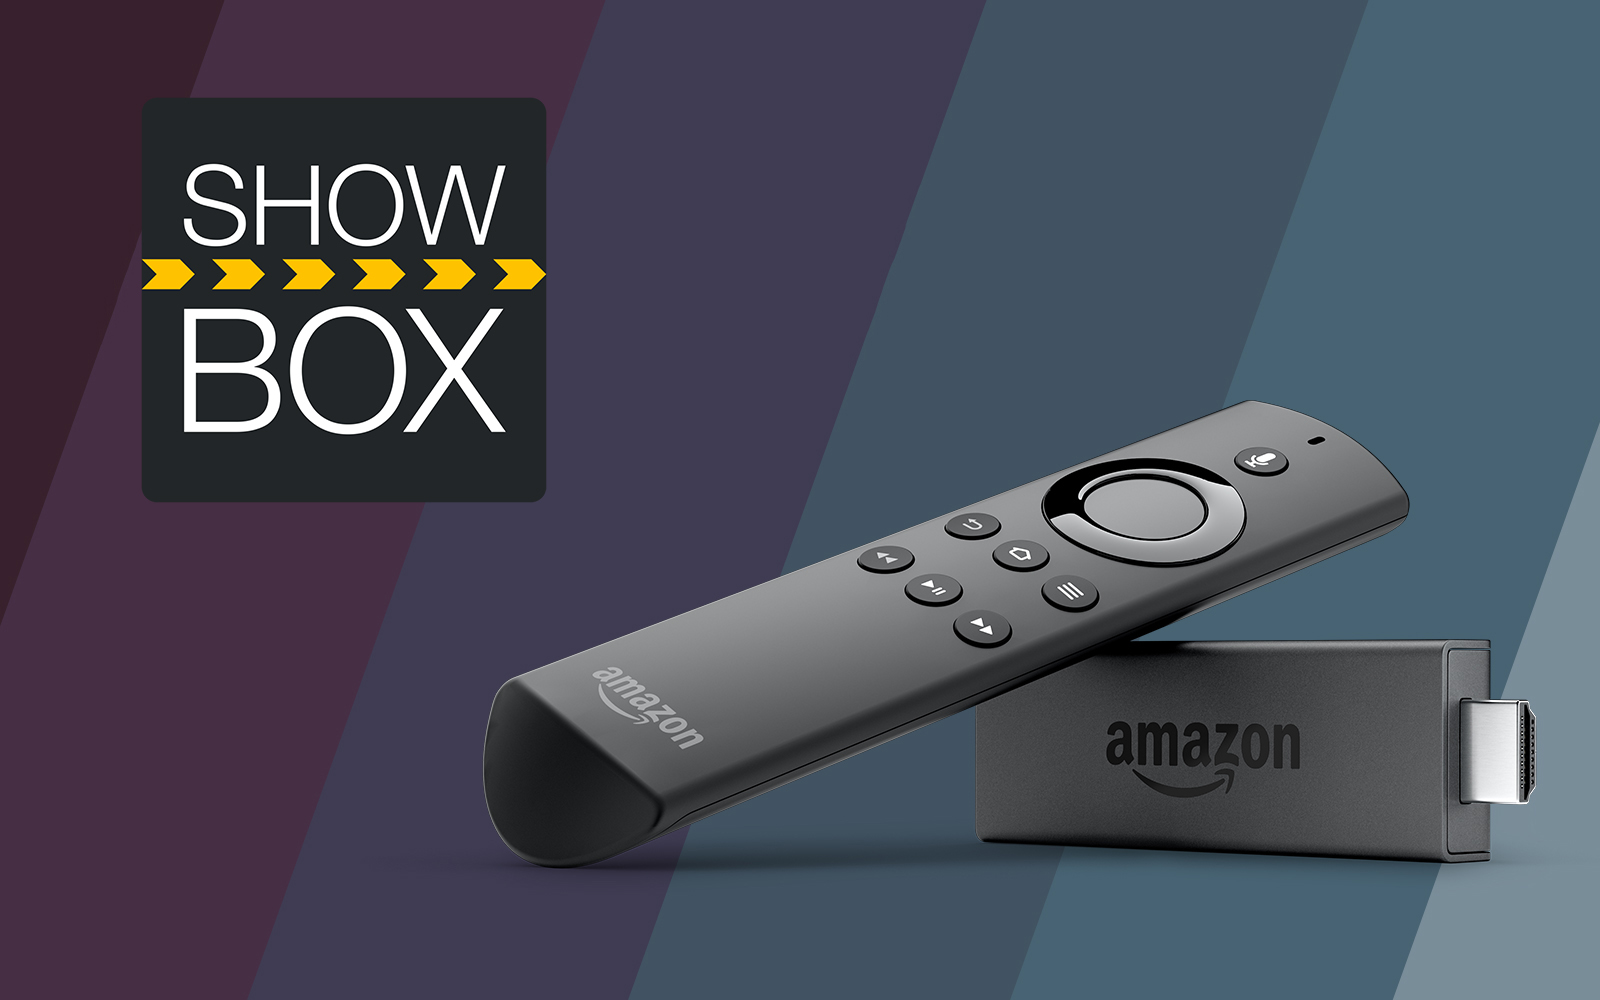 How to get fire stick remote to work on showbox